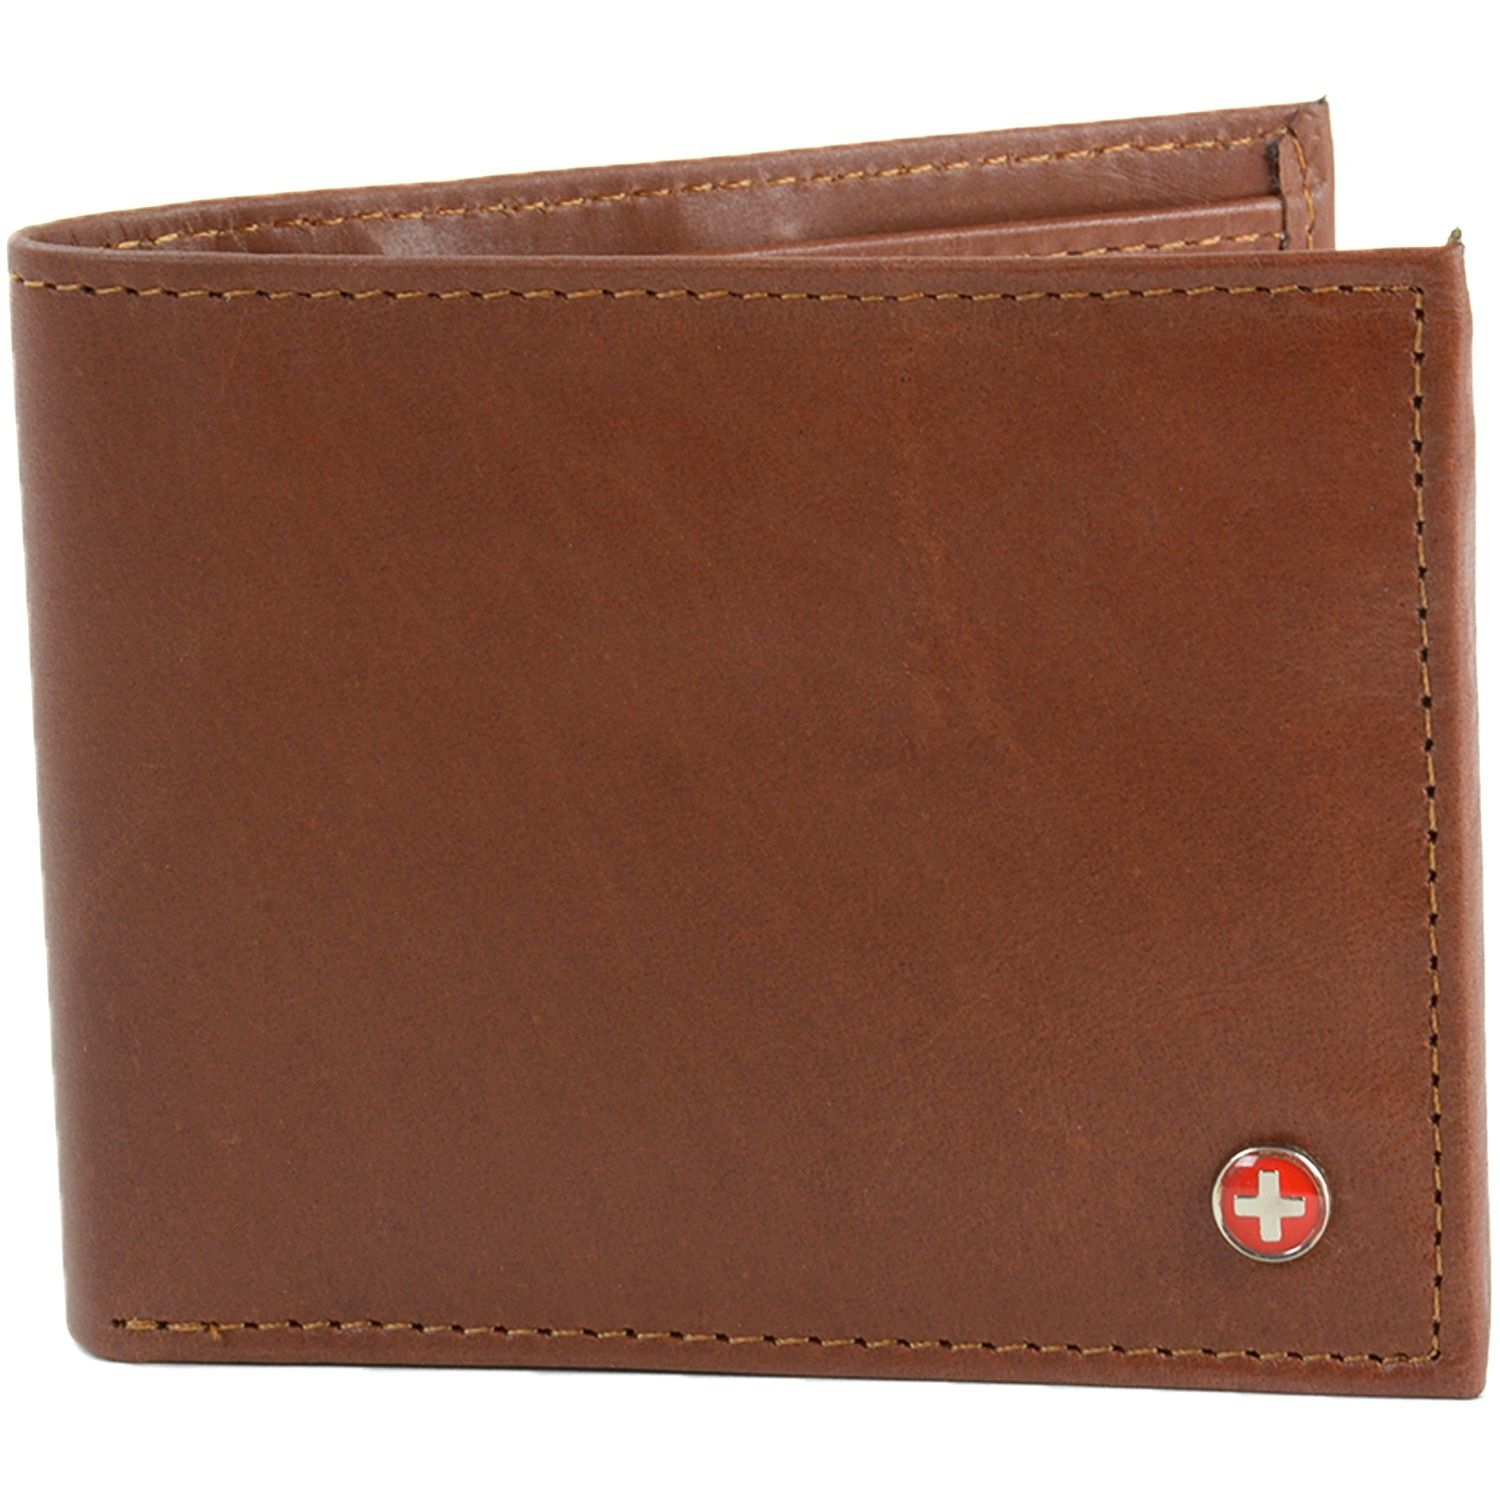 Mens Genuine Leather Wallet trifold ID Cases Credit Card Holder Billfold Brown